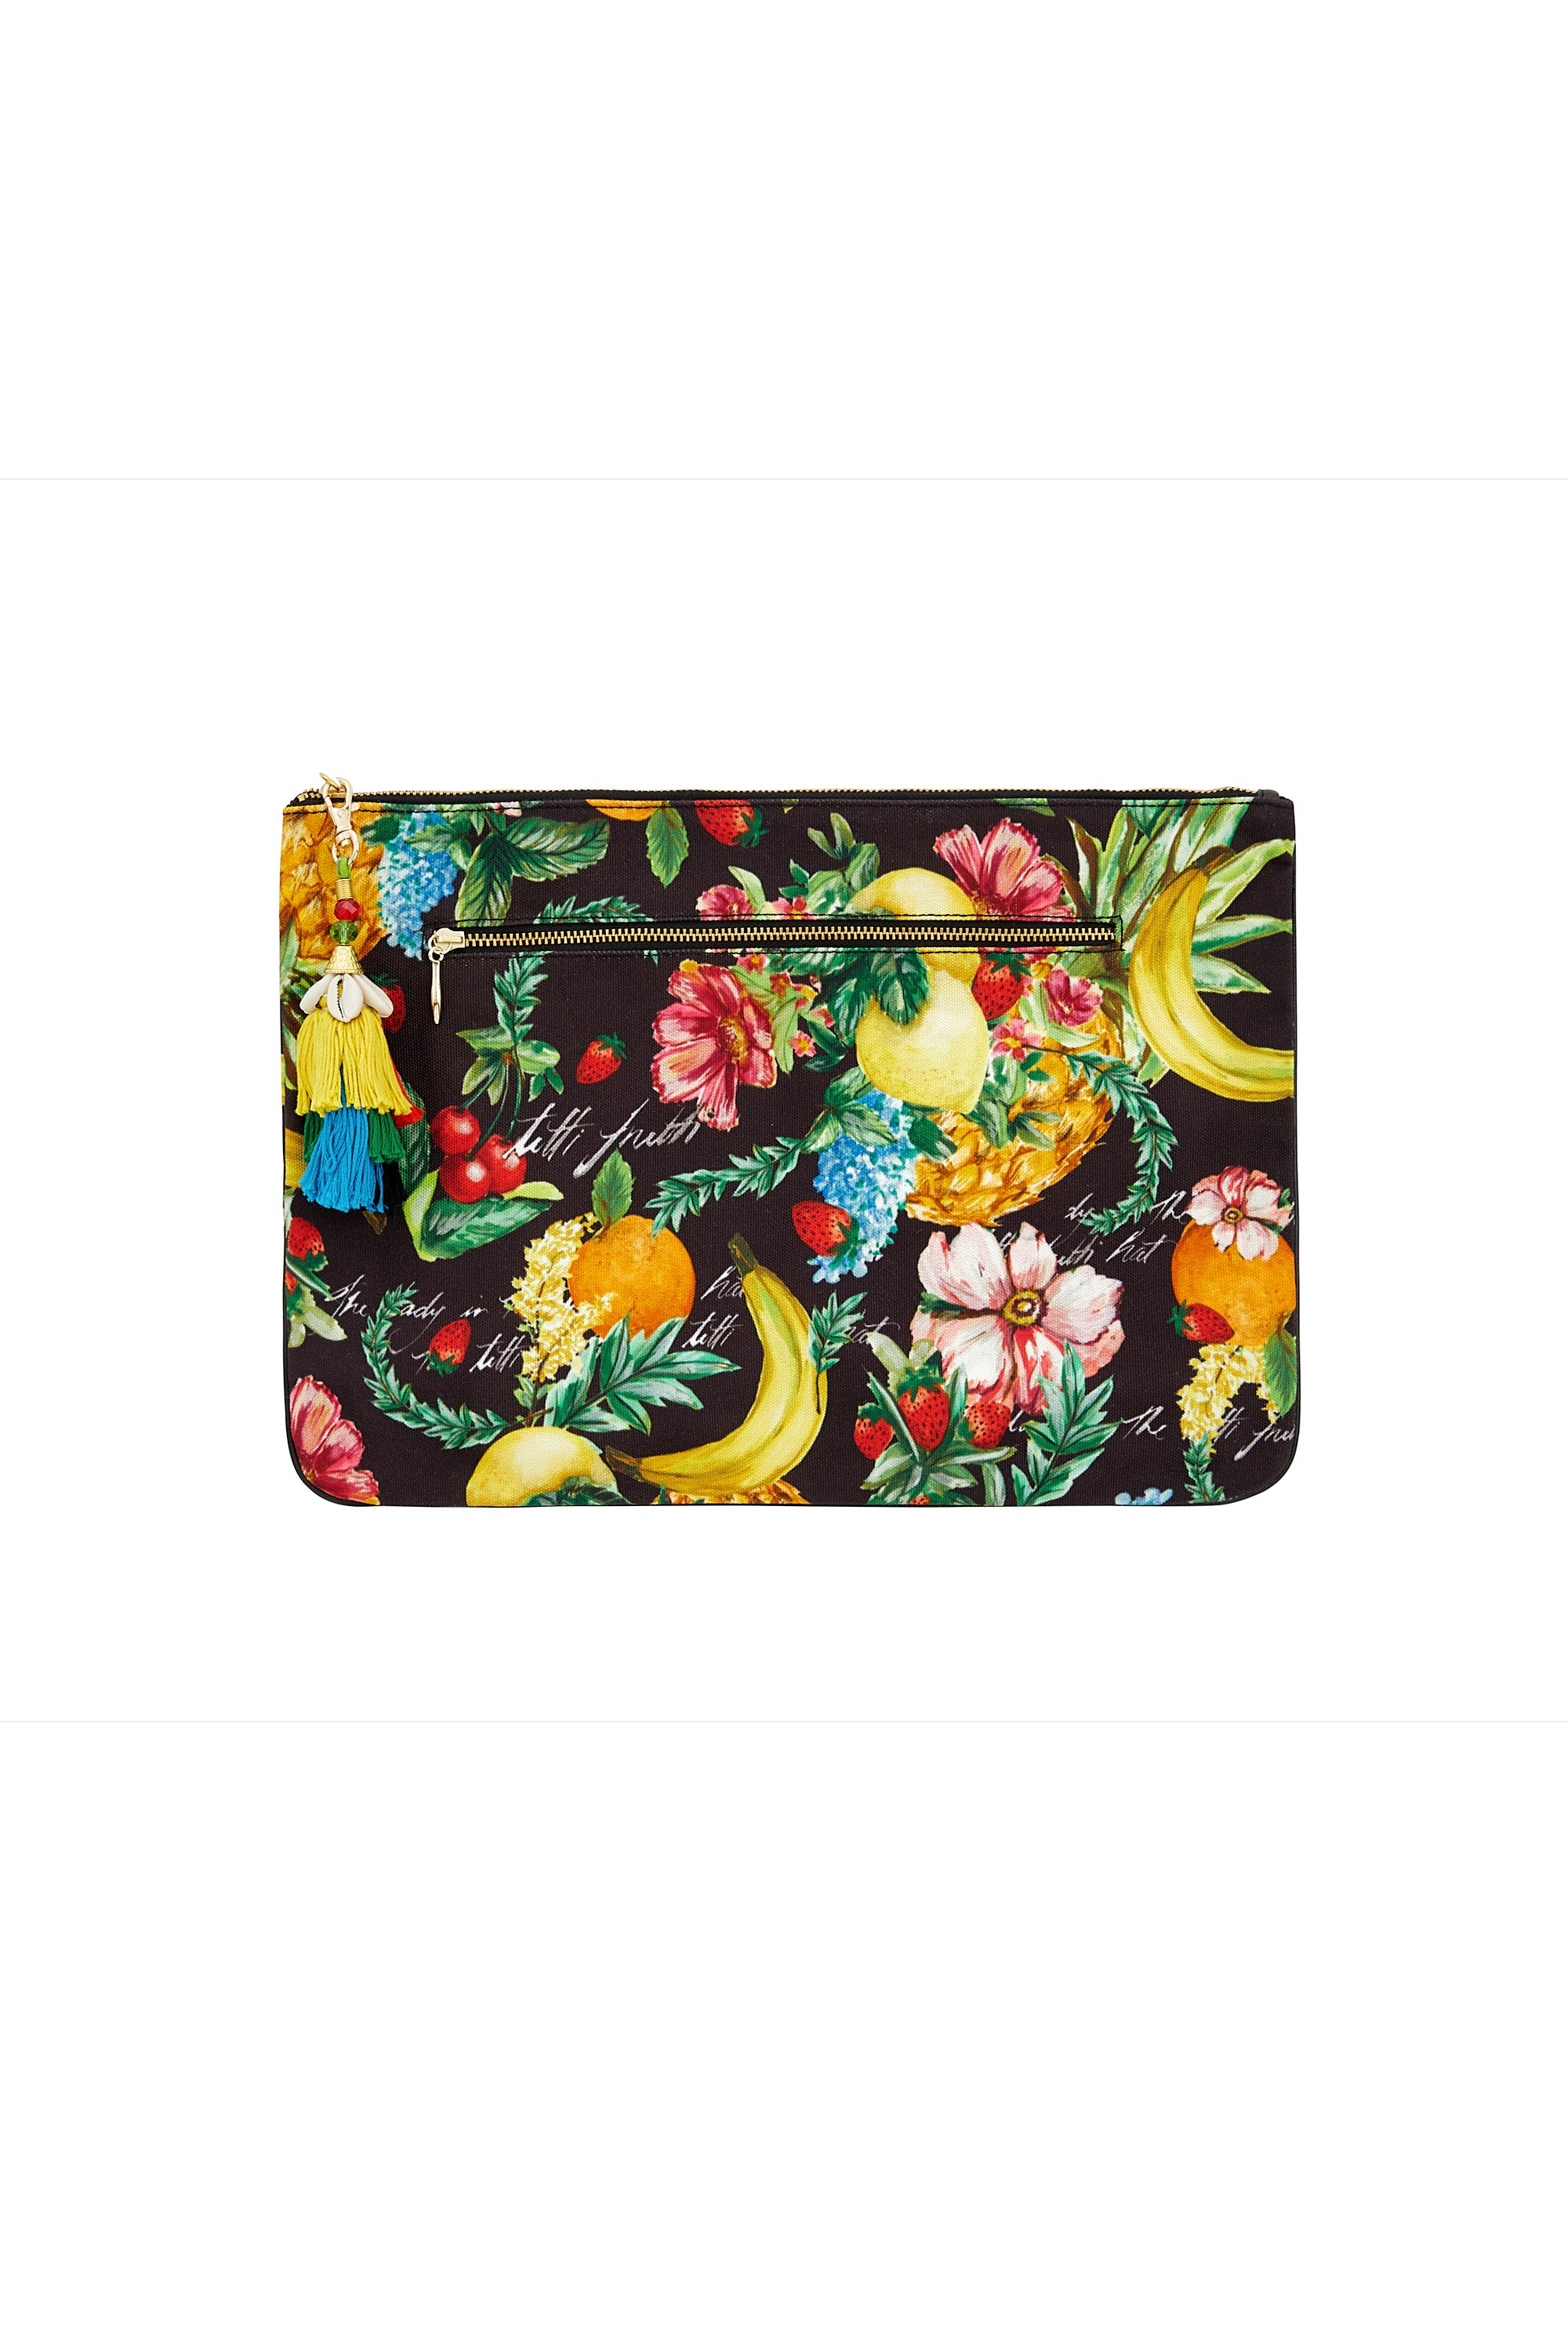 CALL ME CARMEN LARGE CANVAS CLUTCH